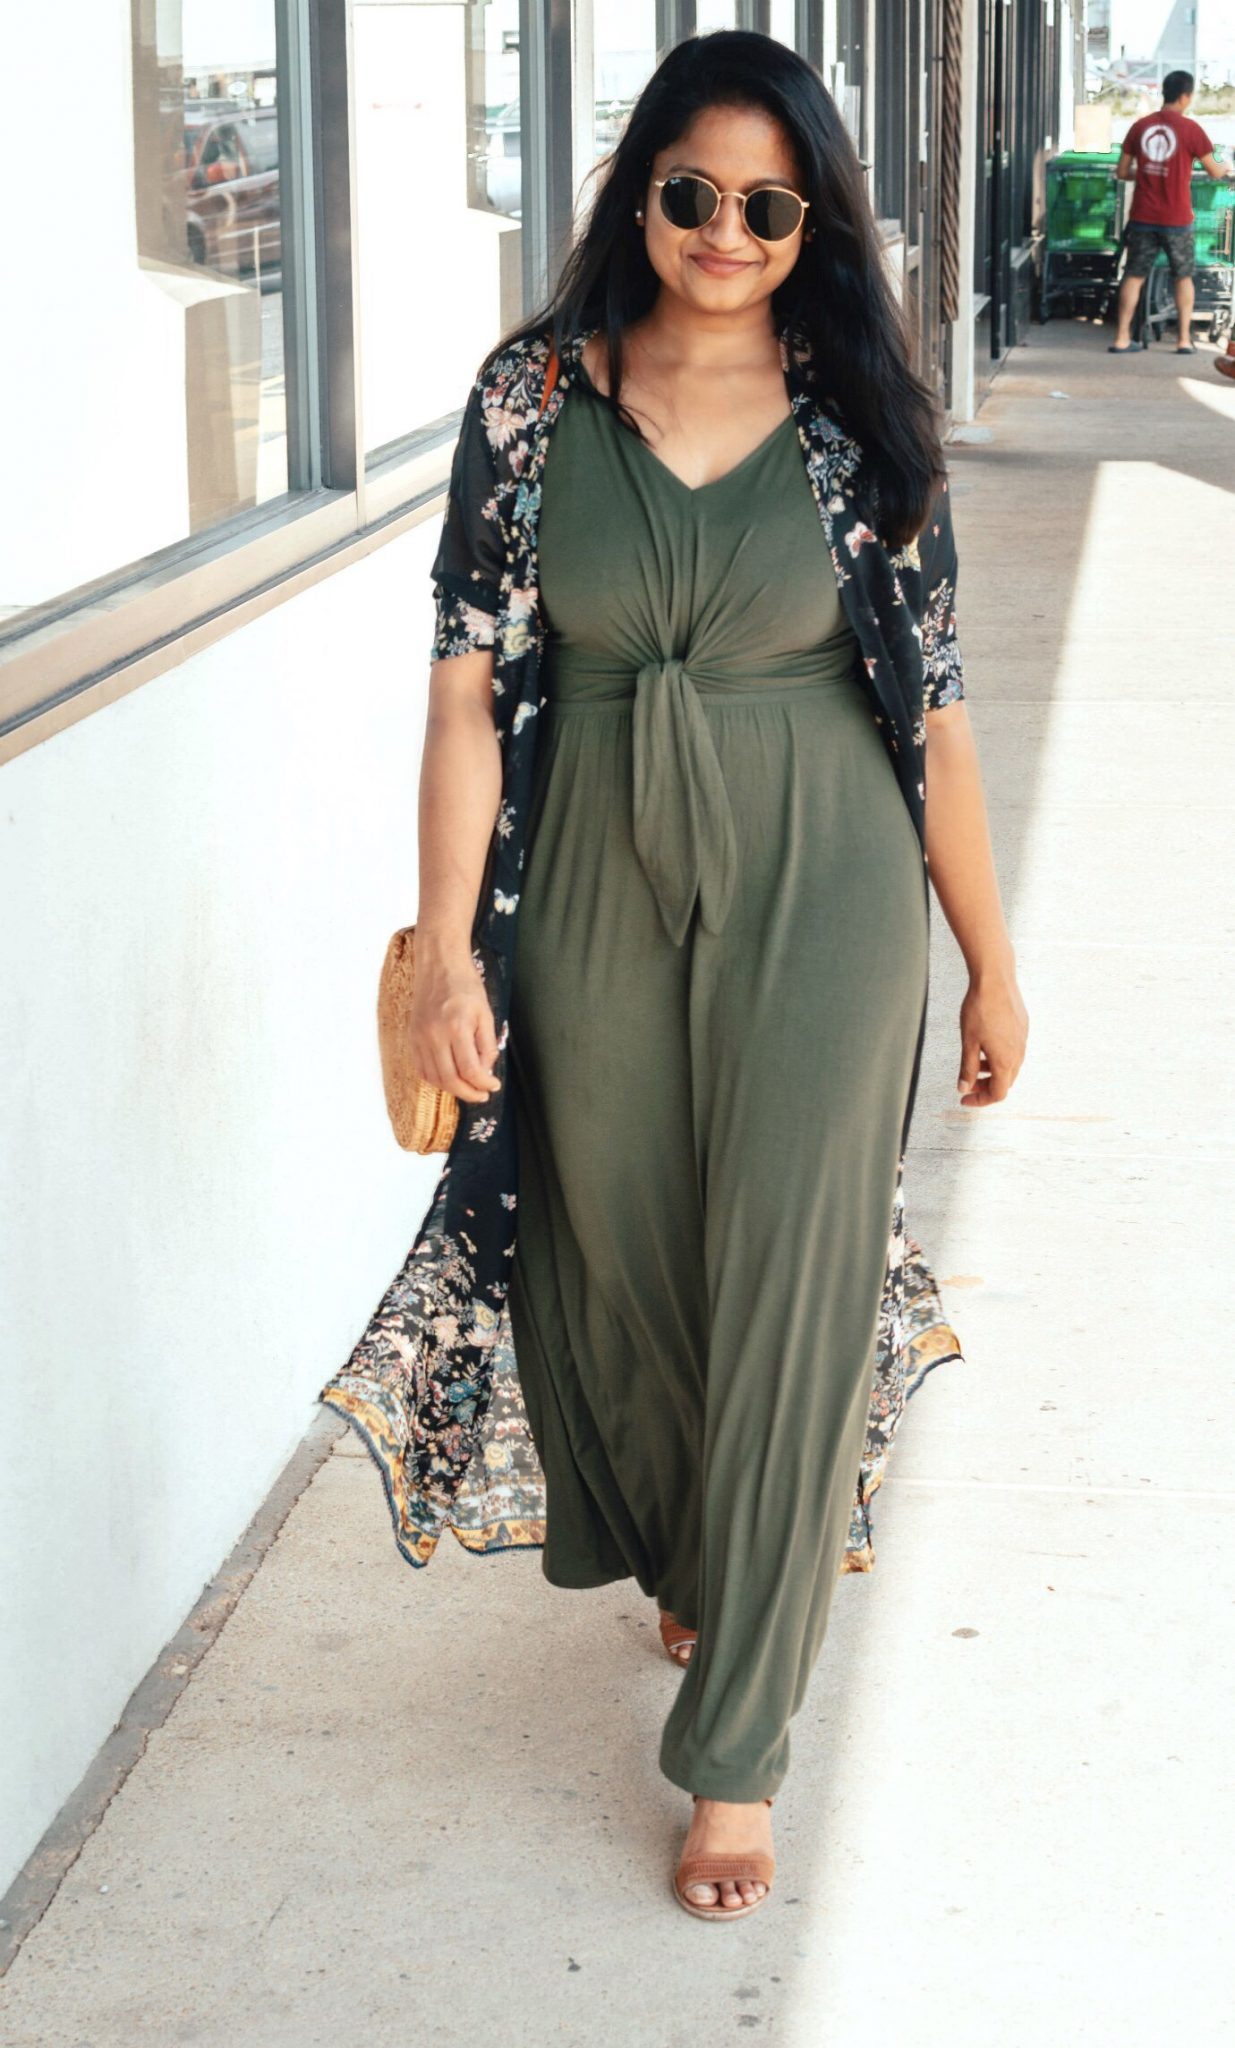 Summer Essentials for Women featured by top US modest fashion blog, Dreaming Loud: image of a woman wearing a JC Penney a.n.a Sleeveless Maxi Dress , Walmart Floral Kimono Long Tops Print Beach Swimwear Maxi Cardigan